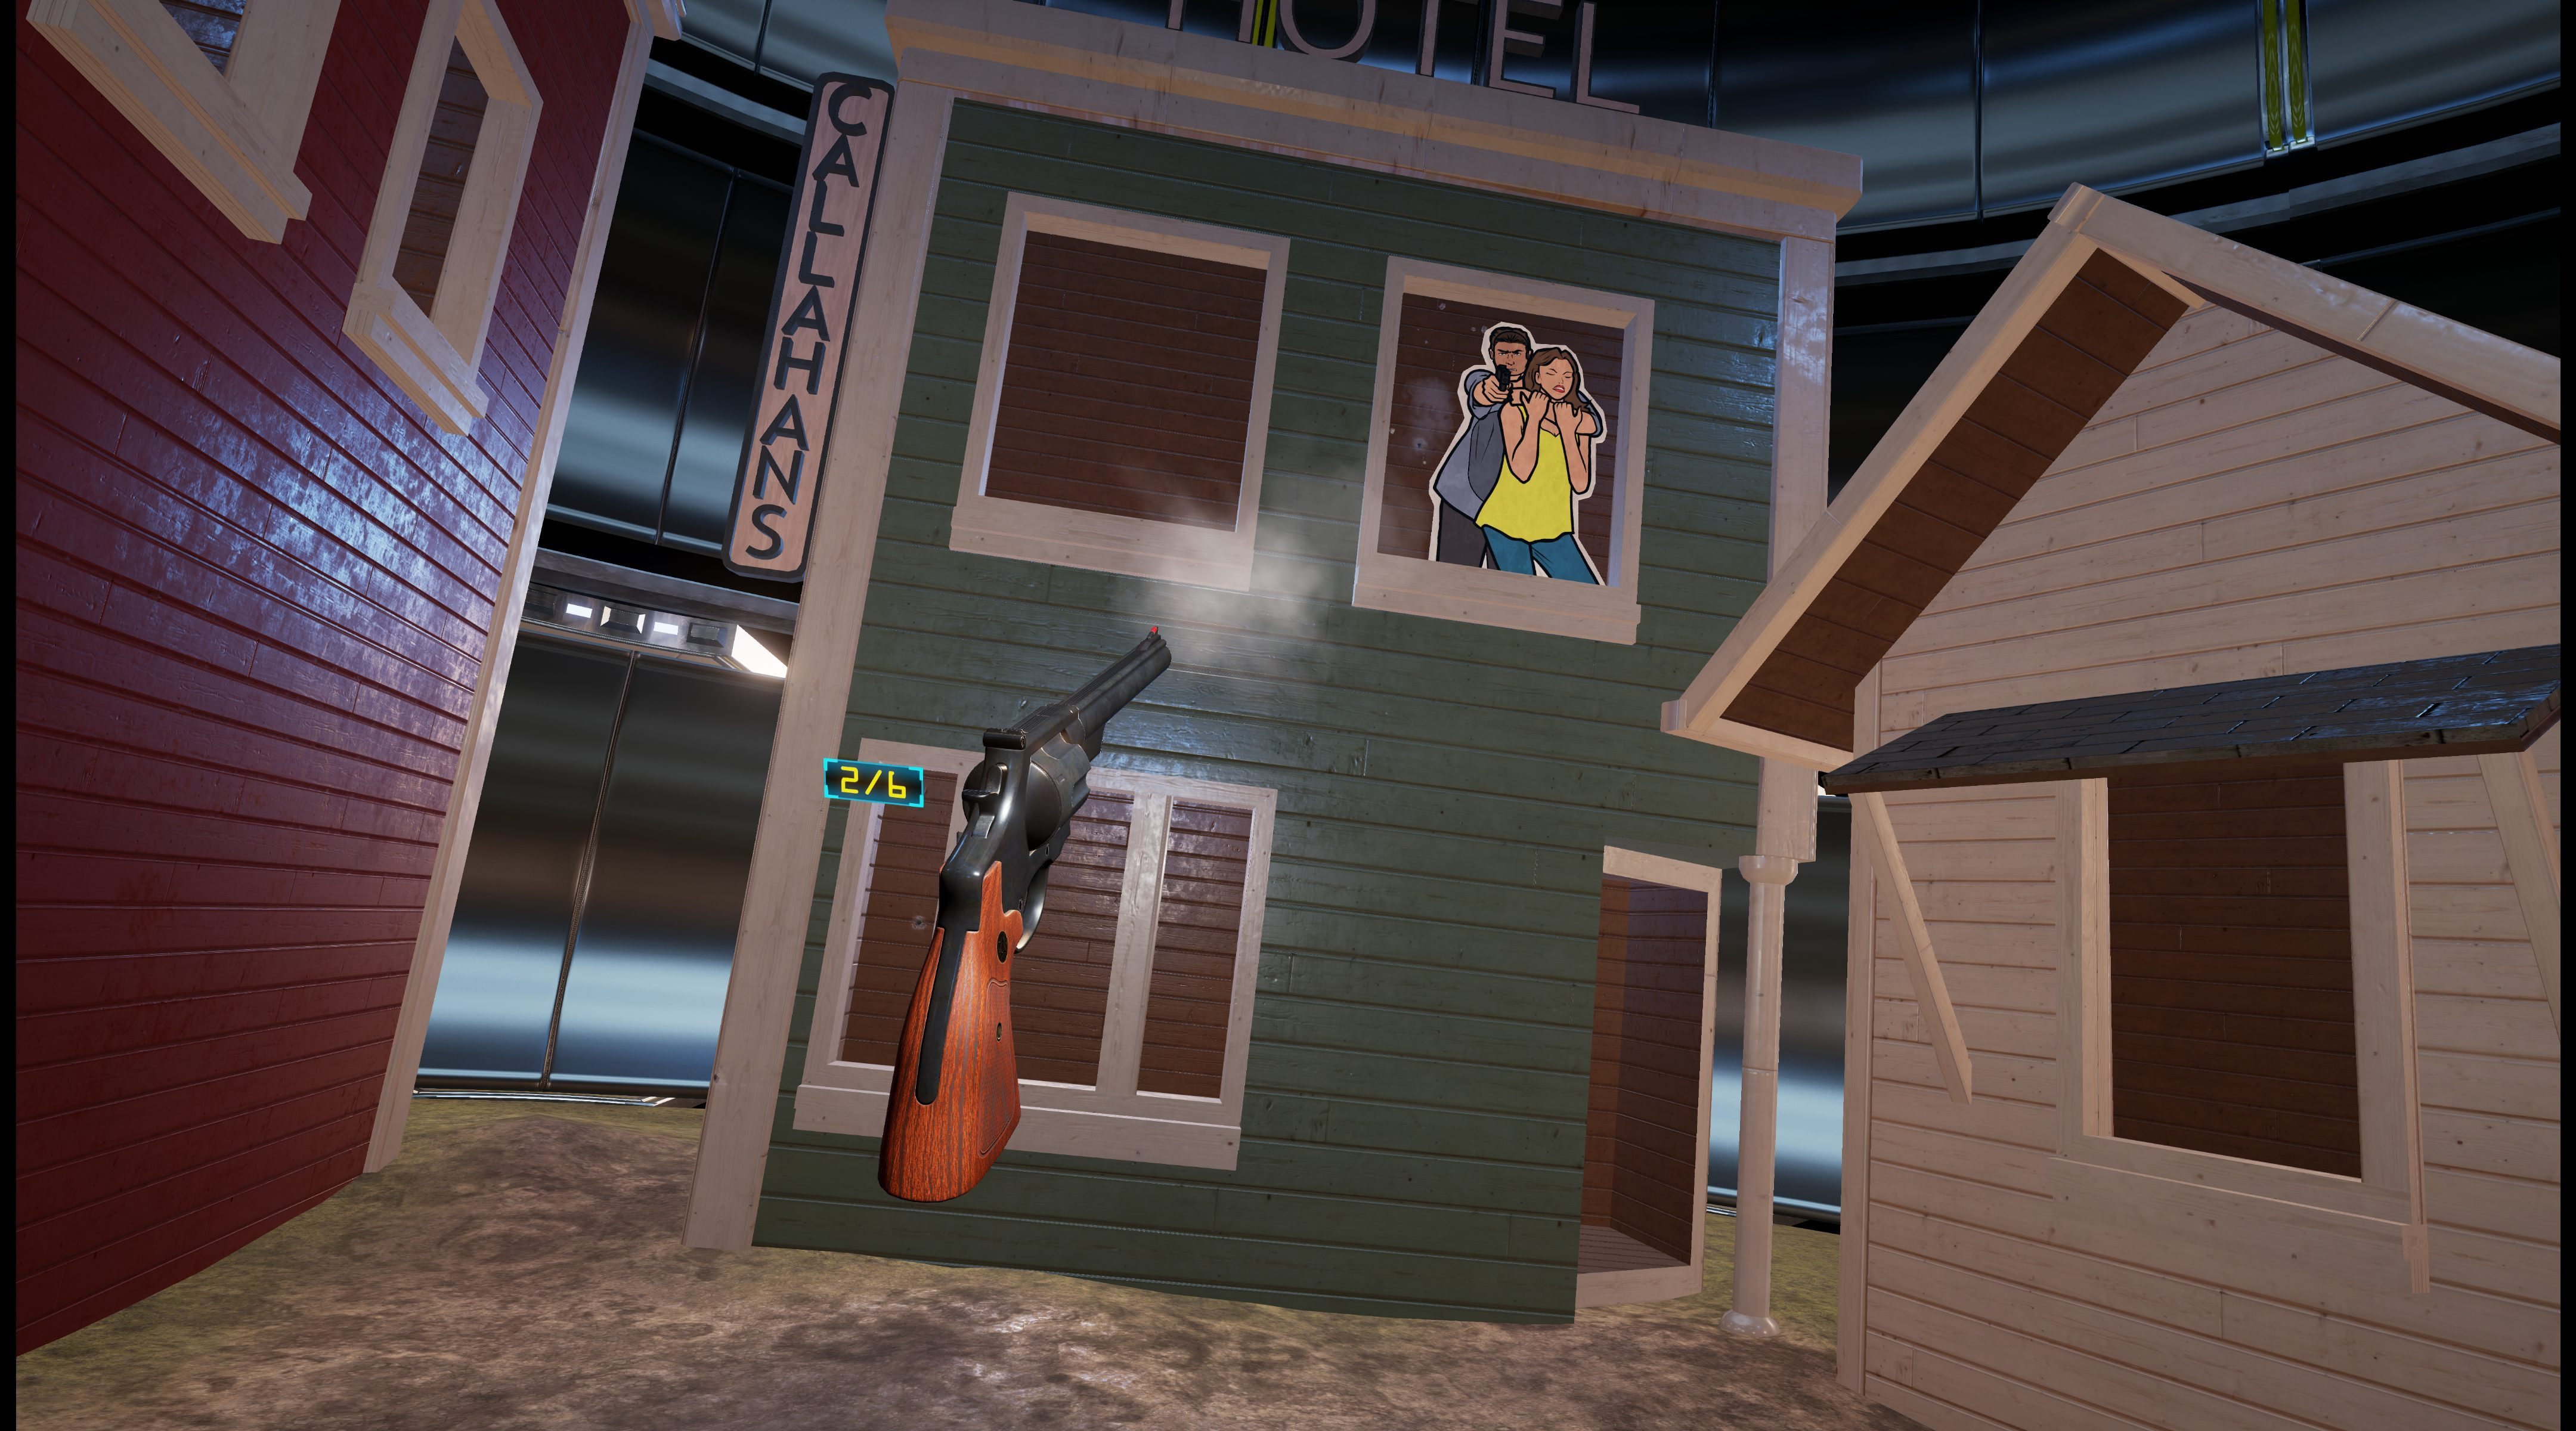 Lethal VR Announced by Team17 and Three Fields Entertainment